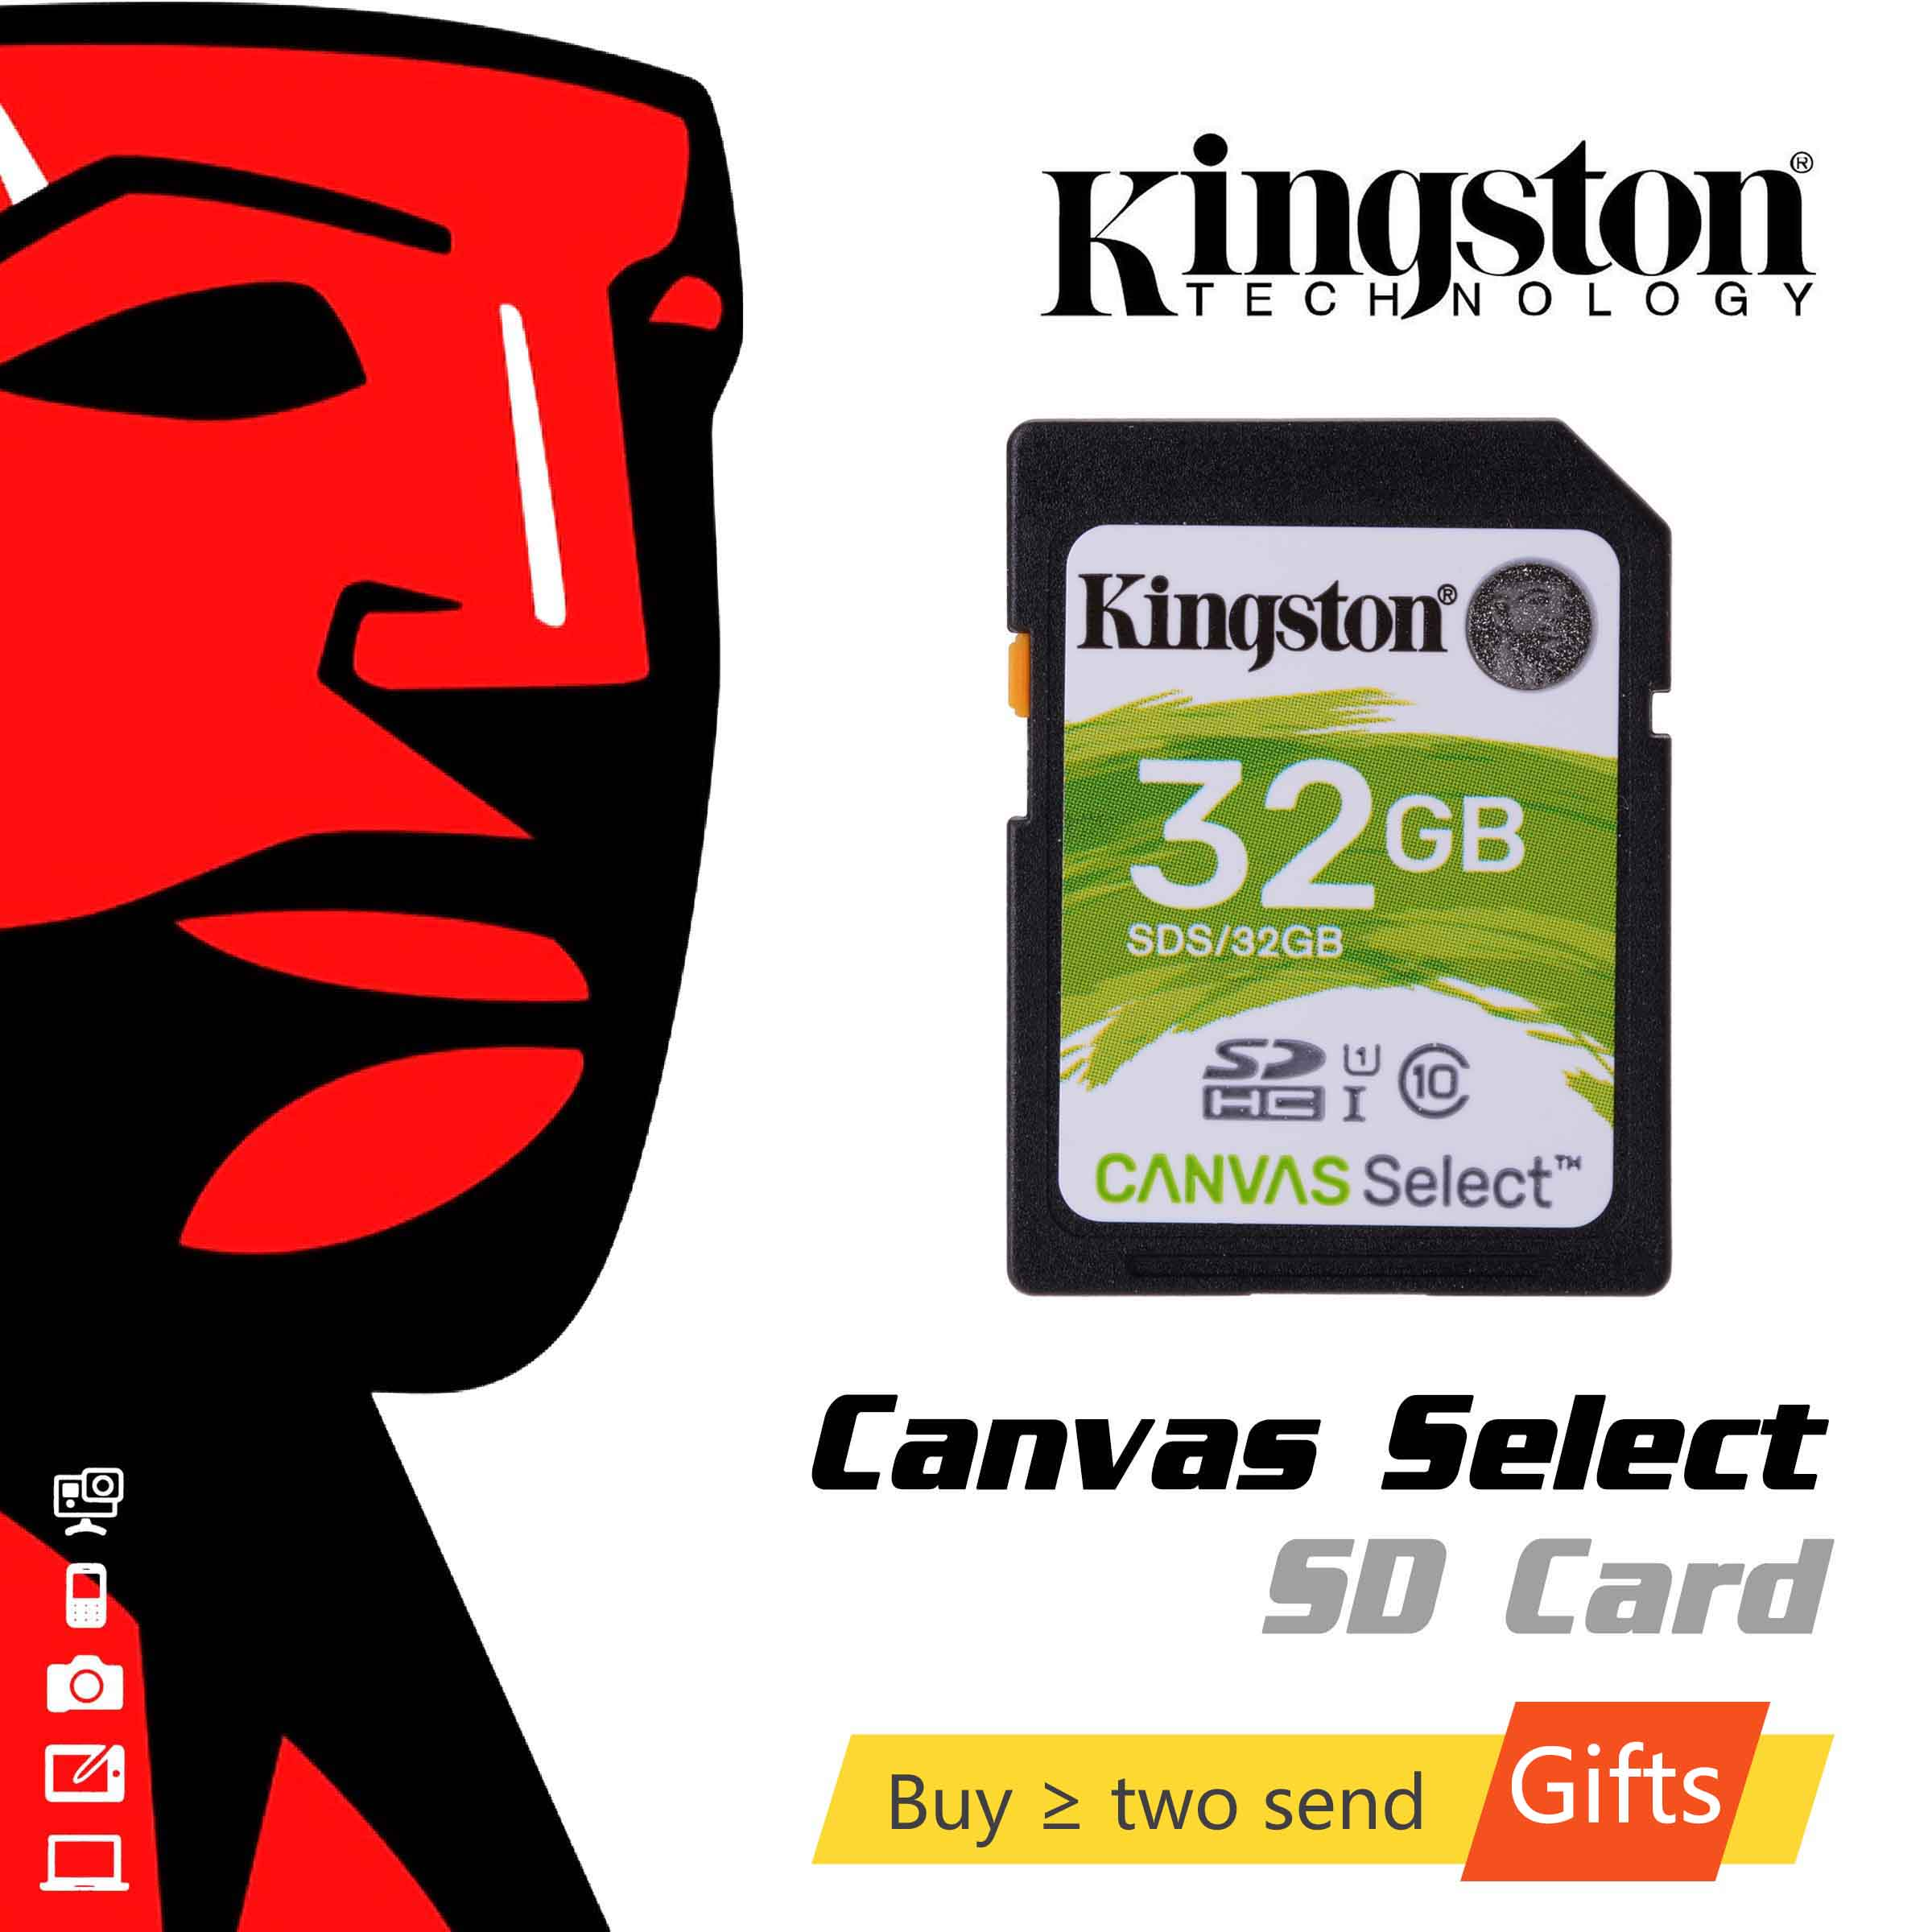 La memoria de Kingston 16gb 32gb 64gb 128gb sd hc xc SDXC SDHC uhs-i HD video Clase 10 cartao de memoria de carte sd tarjeta